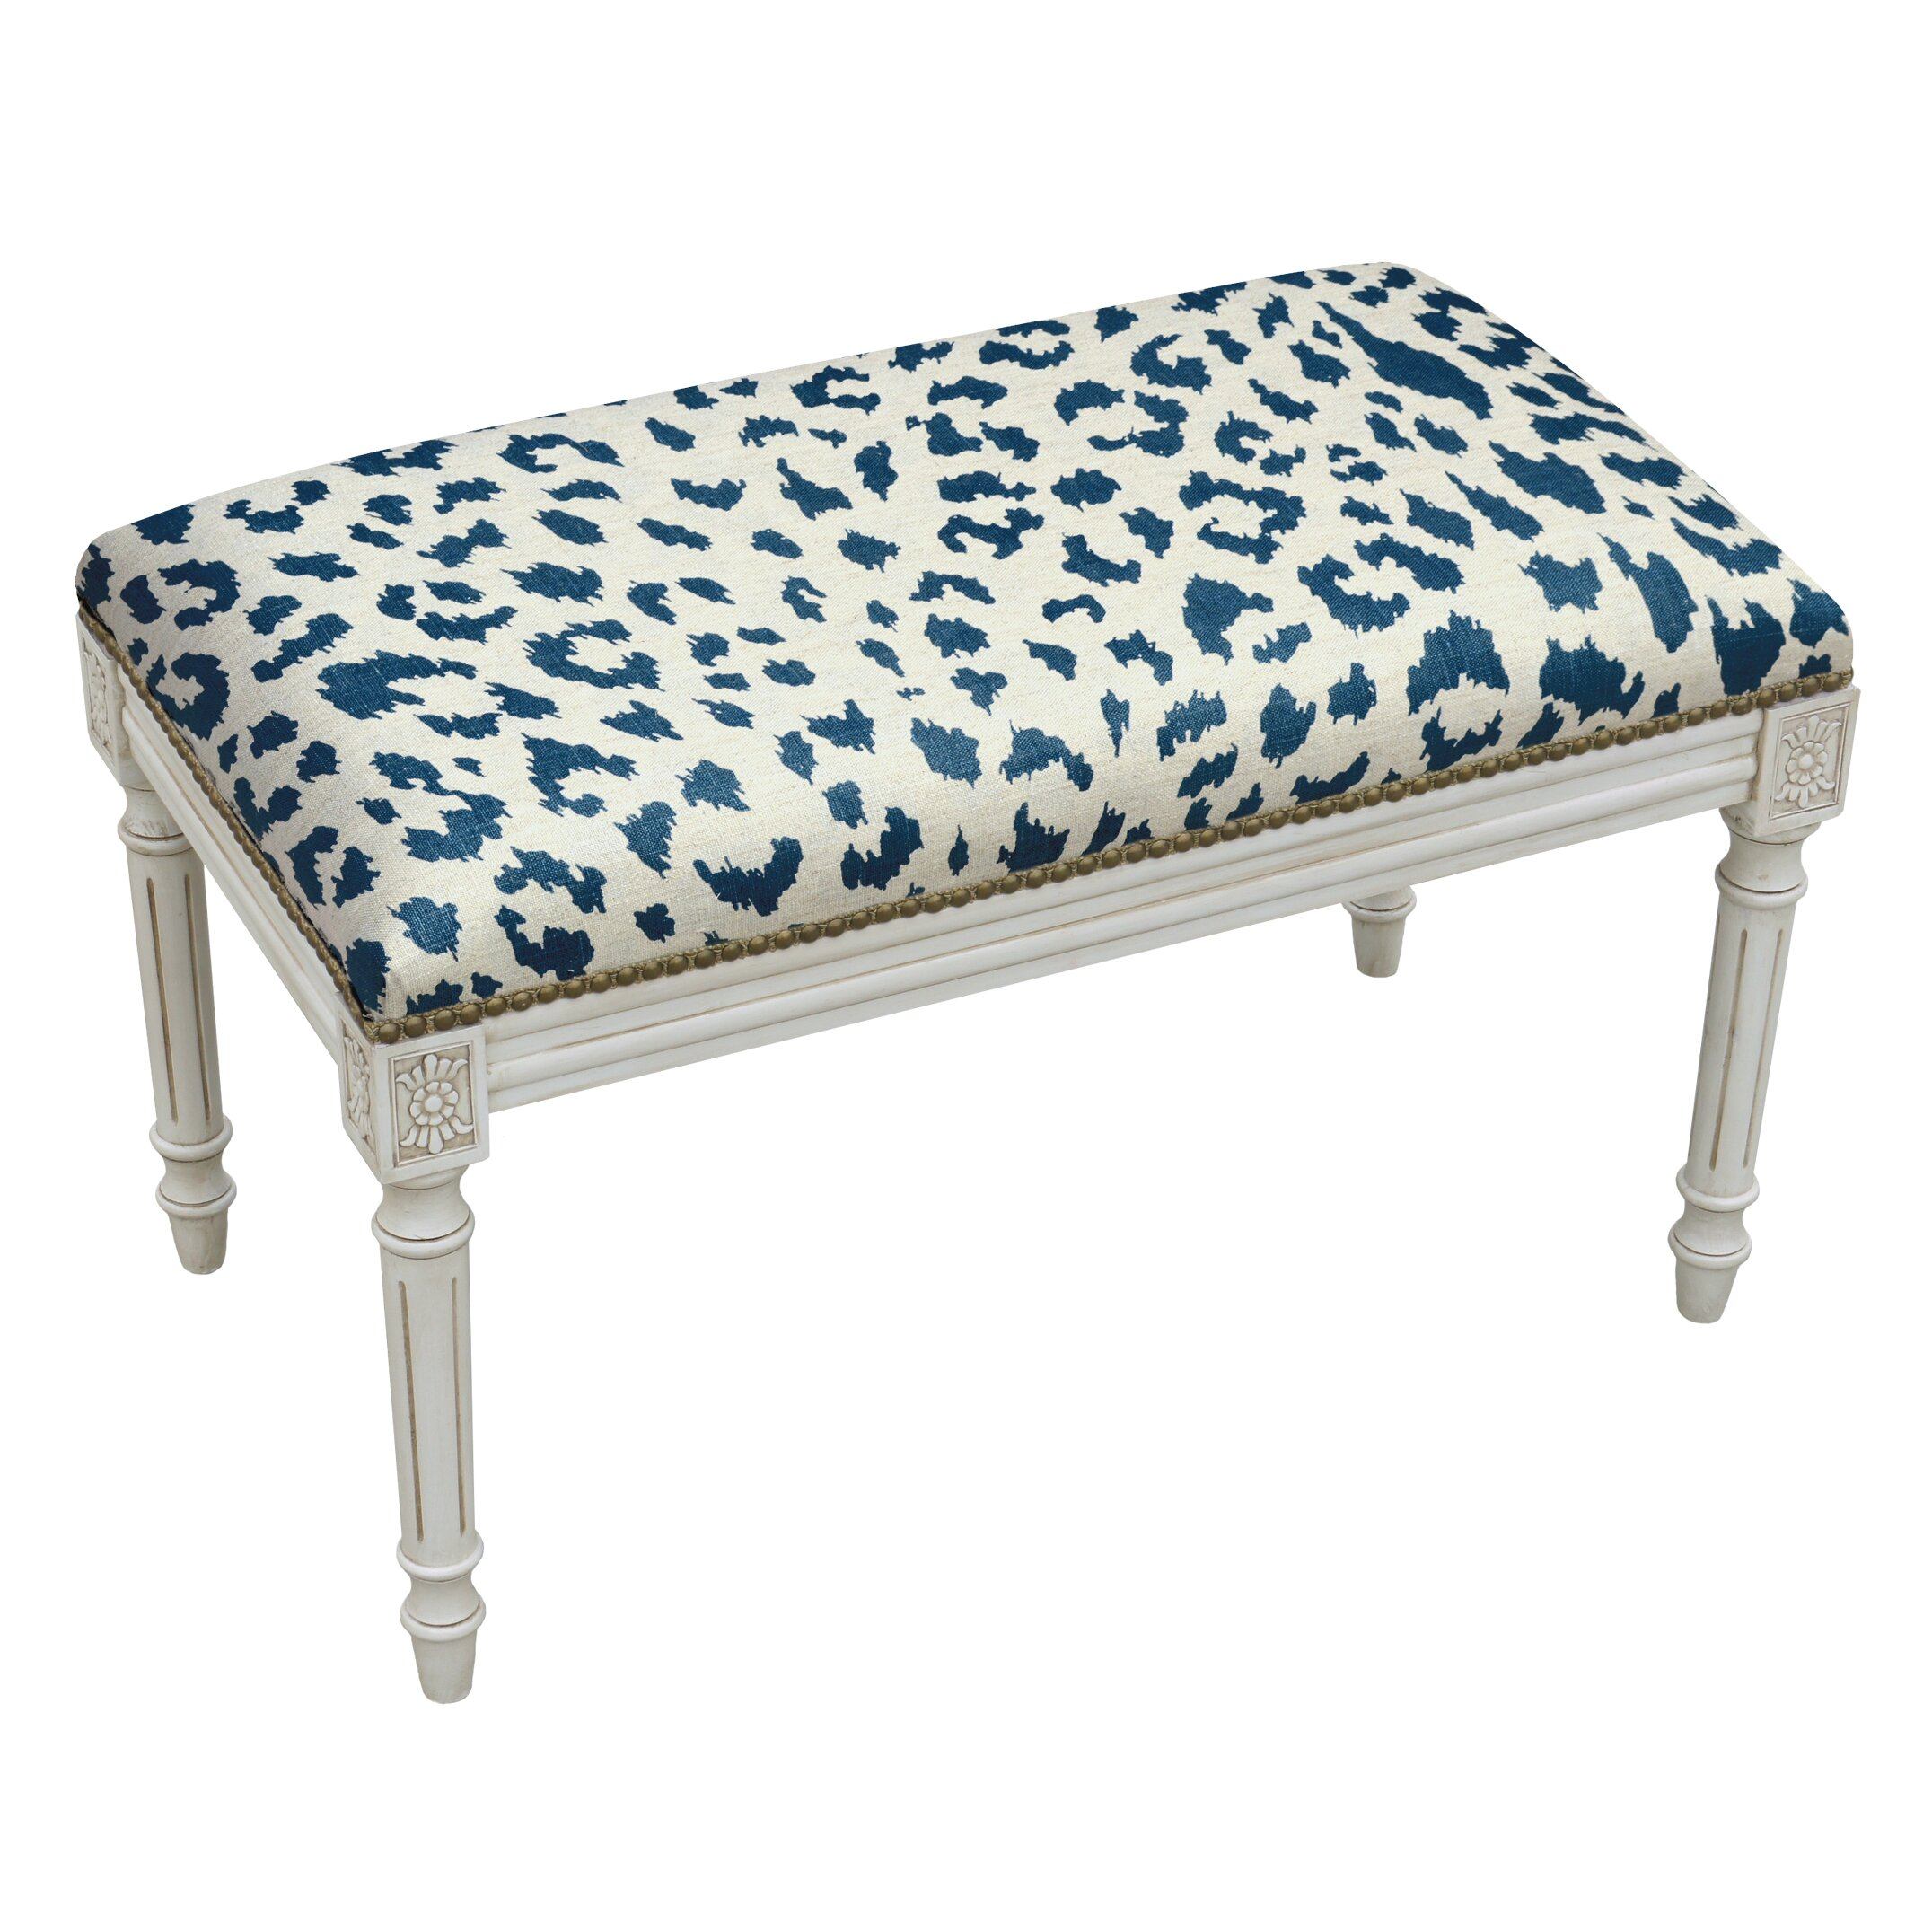 123 Creations Animal Print Upholstered And Wood Bench